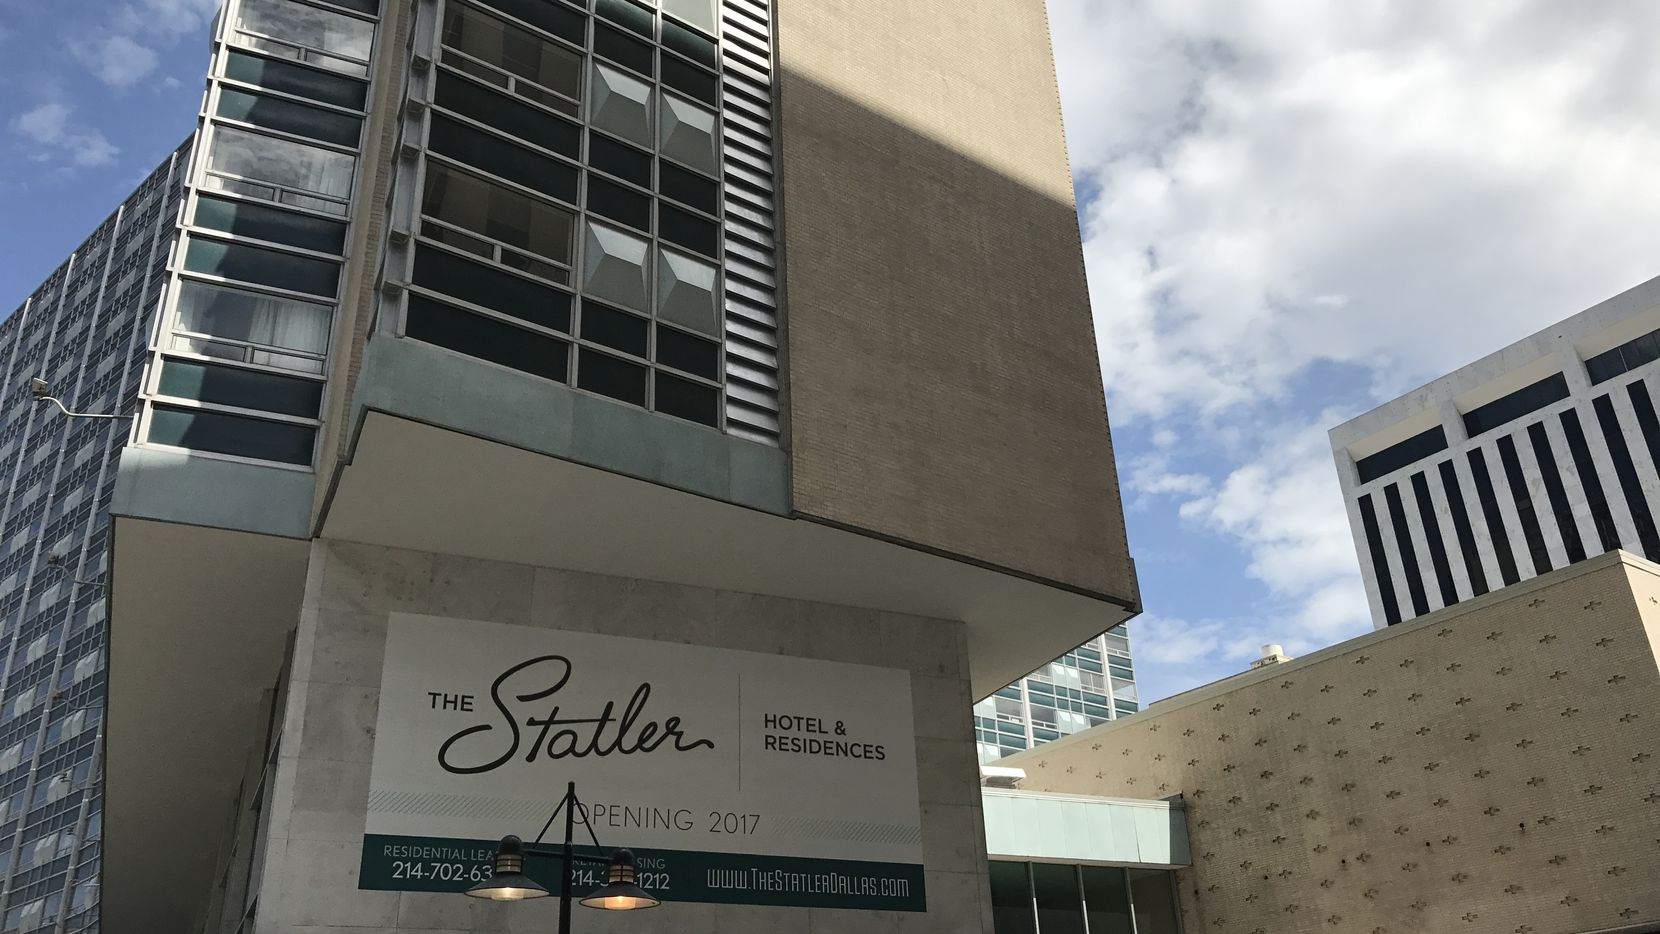 The $230 million Statler Hotel complex is expected to open before the end of the year.